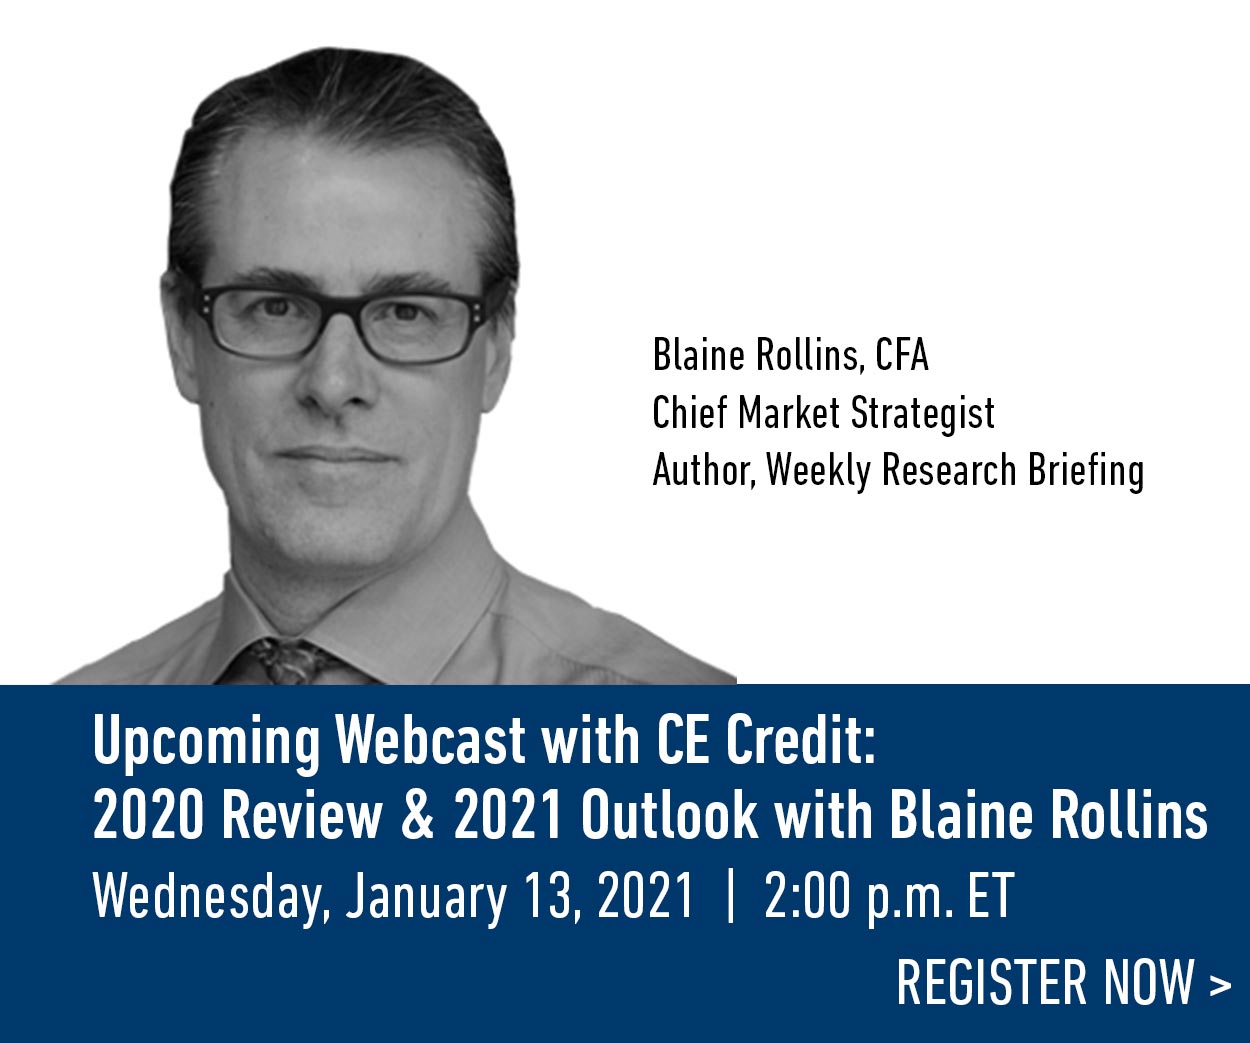 Webcast: 2020 Review & 2021 Outlook with Blaine Rollins, CFA, Chief Market Strategist